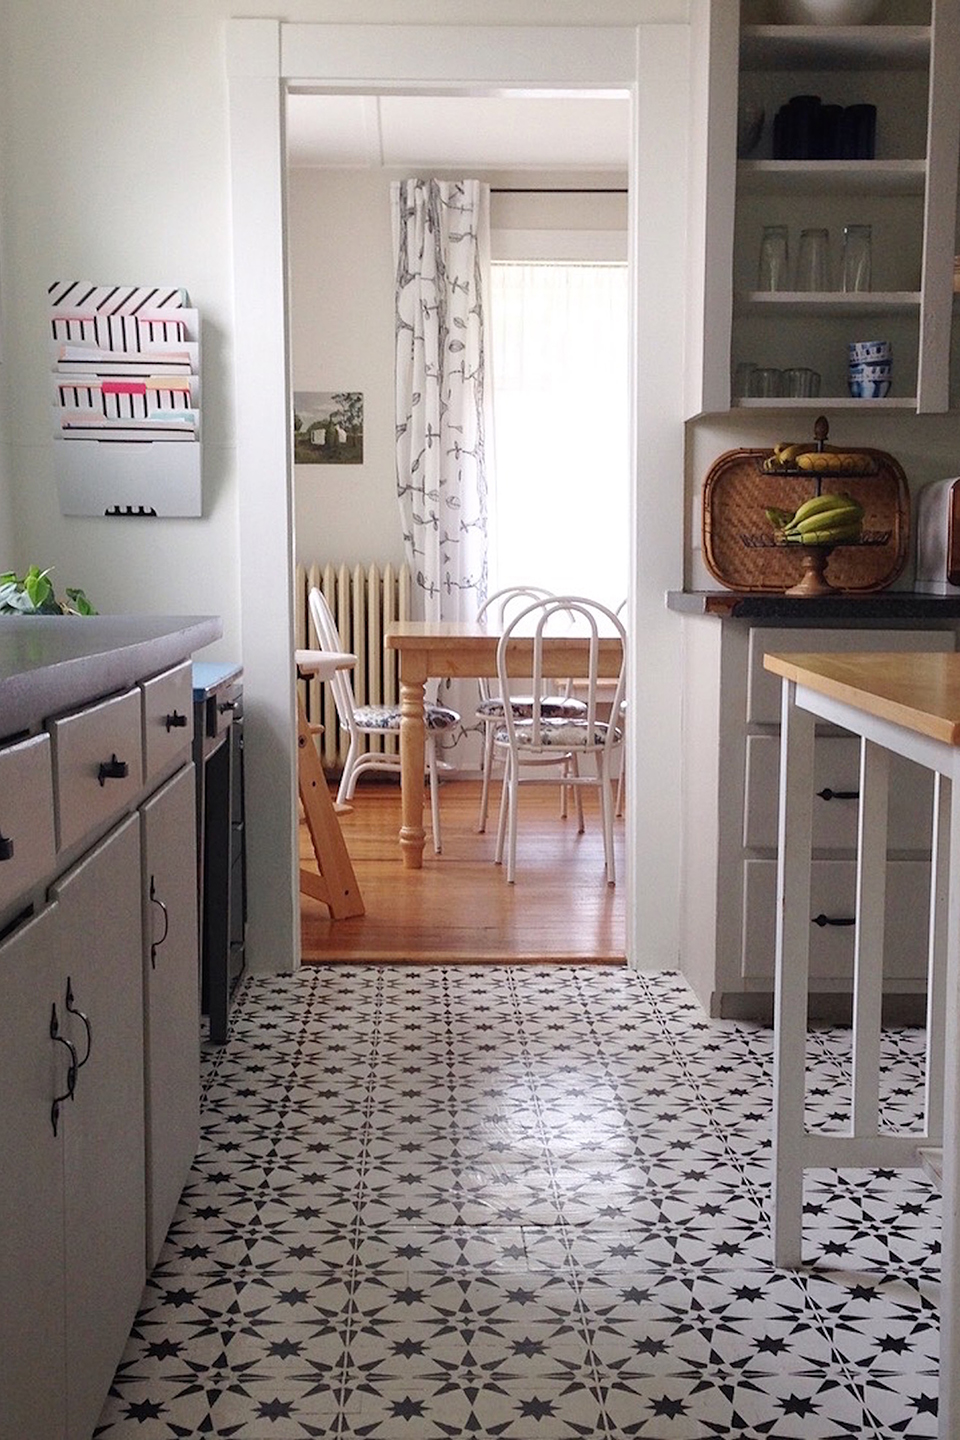 Wood kitchen floor painted white with navy blue stars